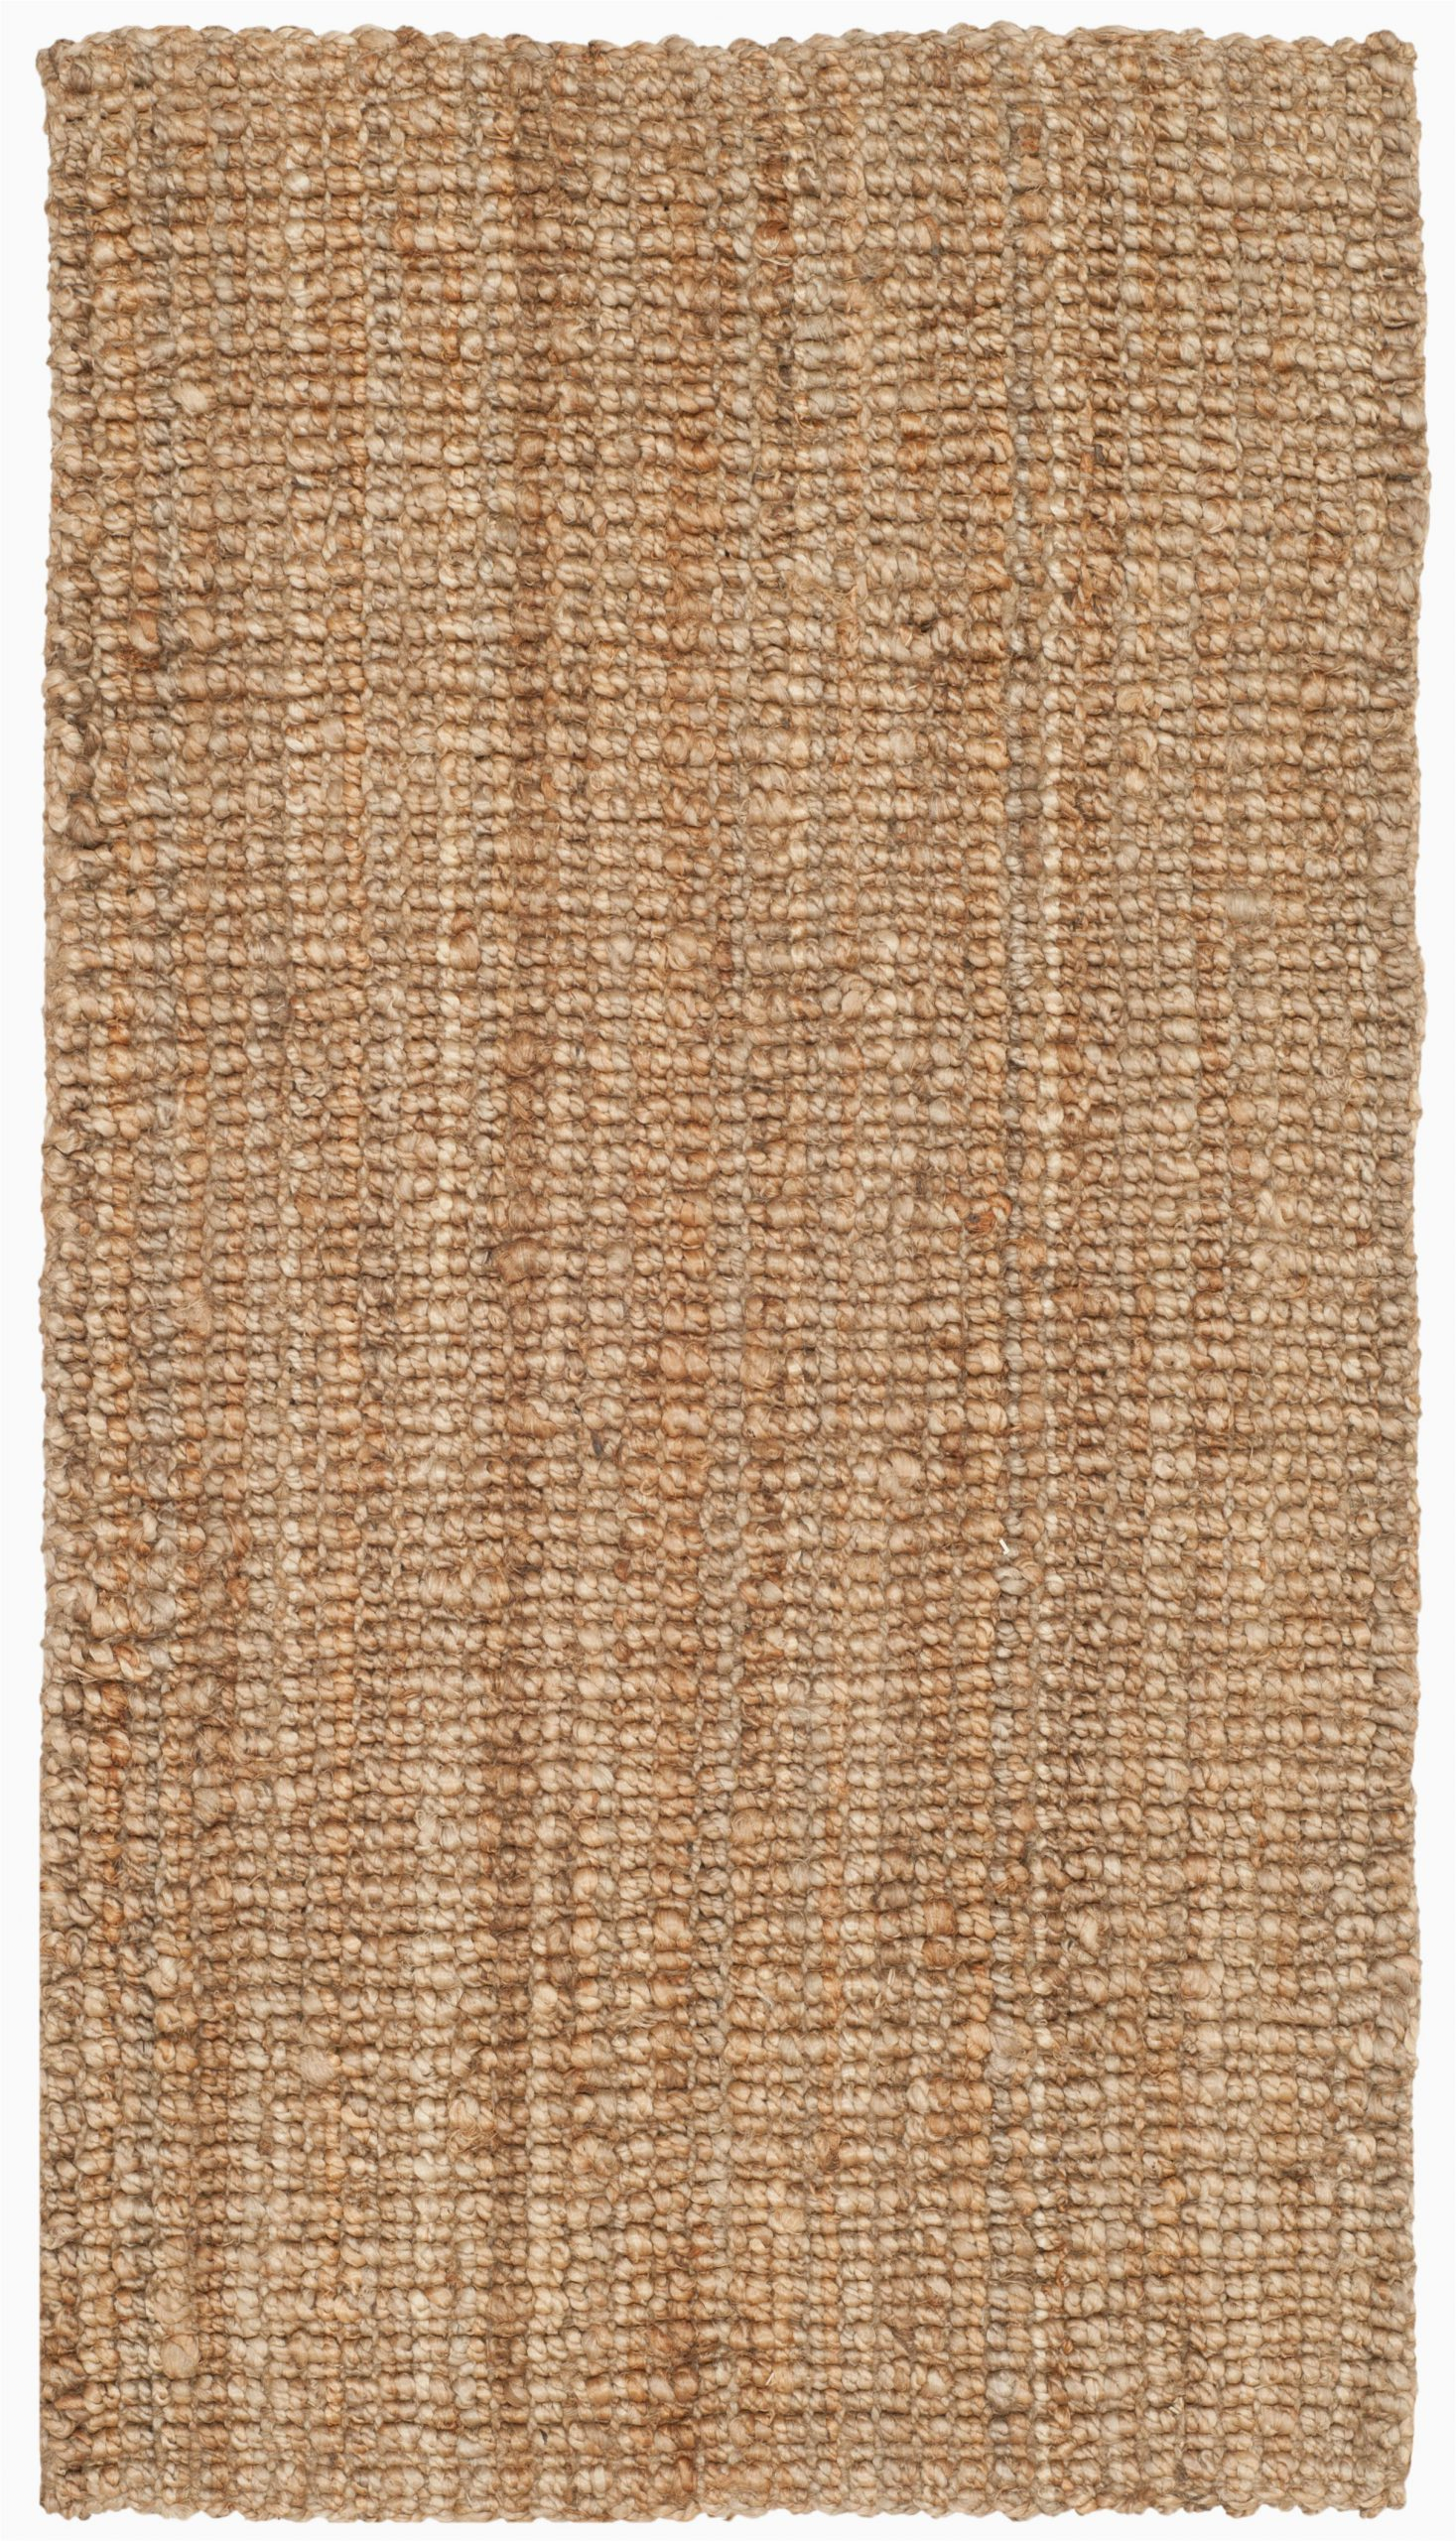 Safavieh Natural Fiber Levi Braided area Rug or Runner Safavieh Natural Fiber Levi Braided area Rug Runner Walmart